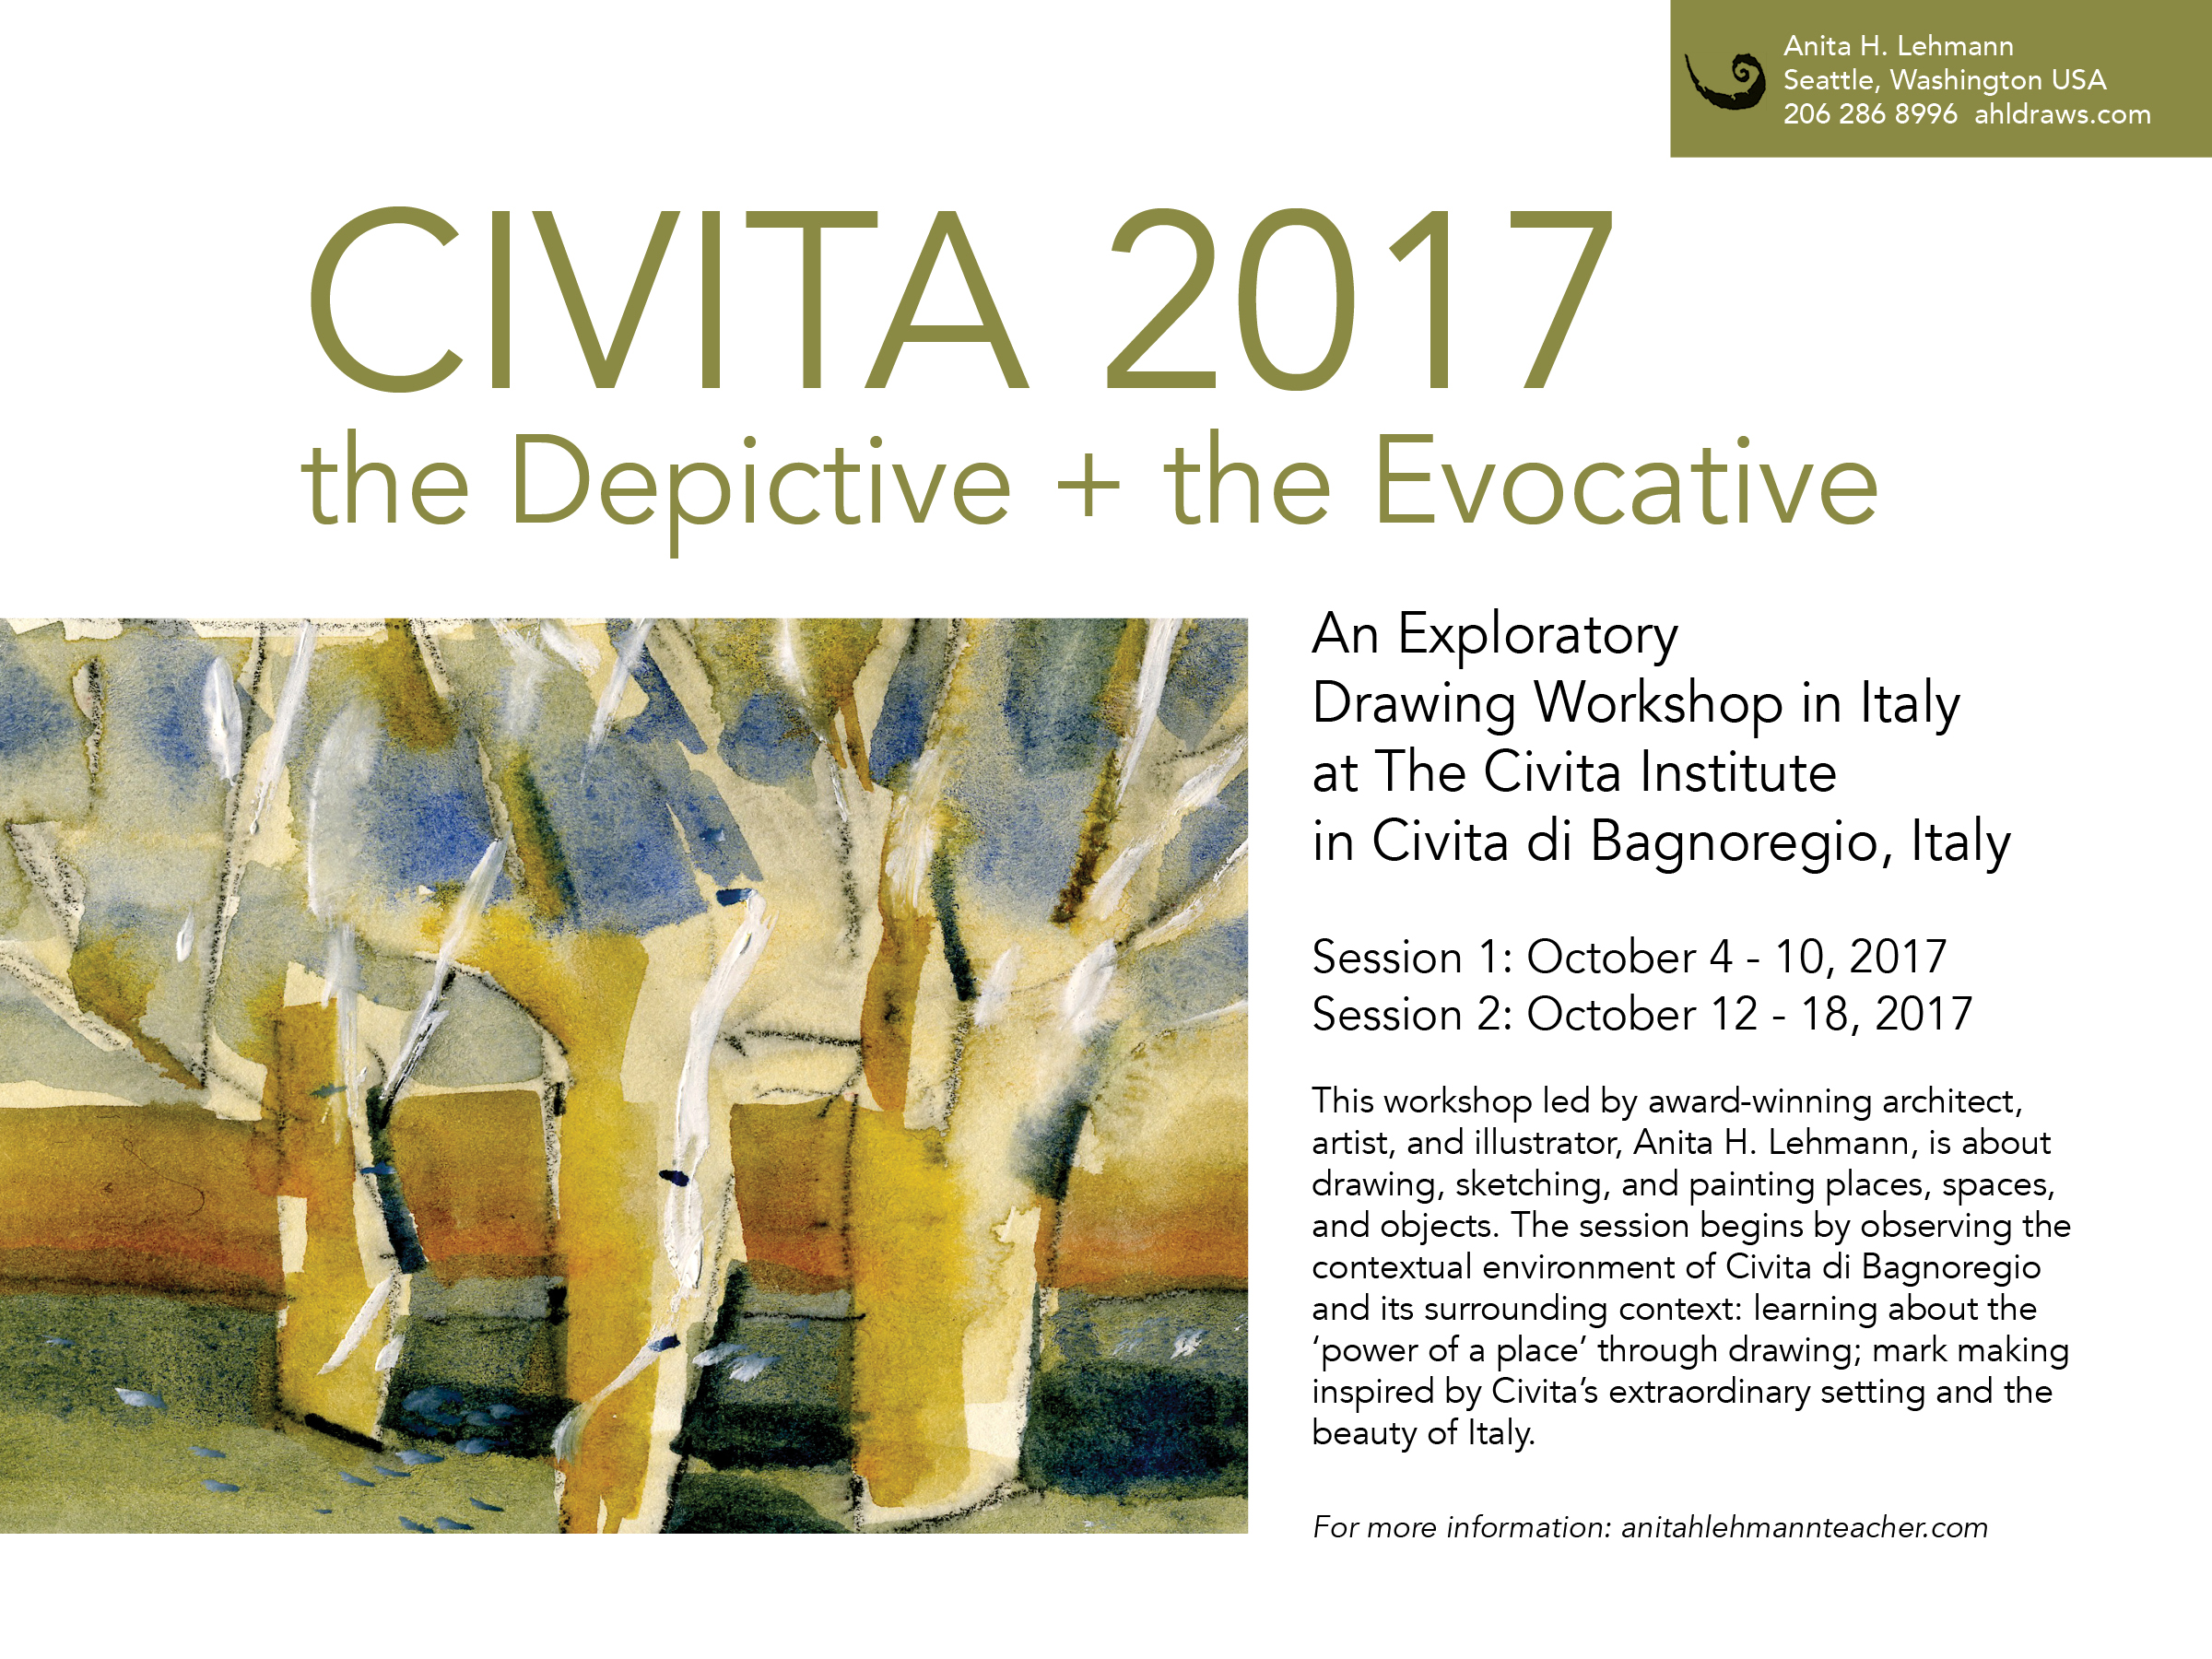 civitaworkshop_postcard_ahl2017_2